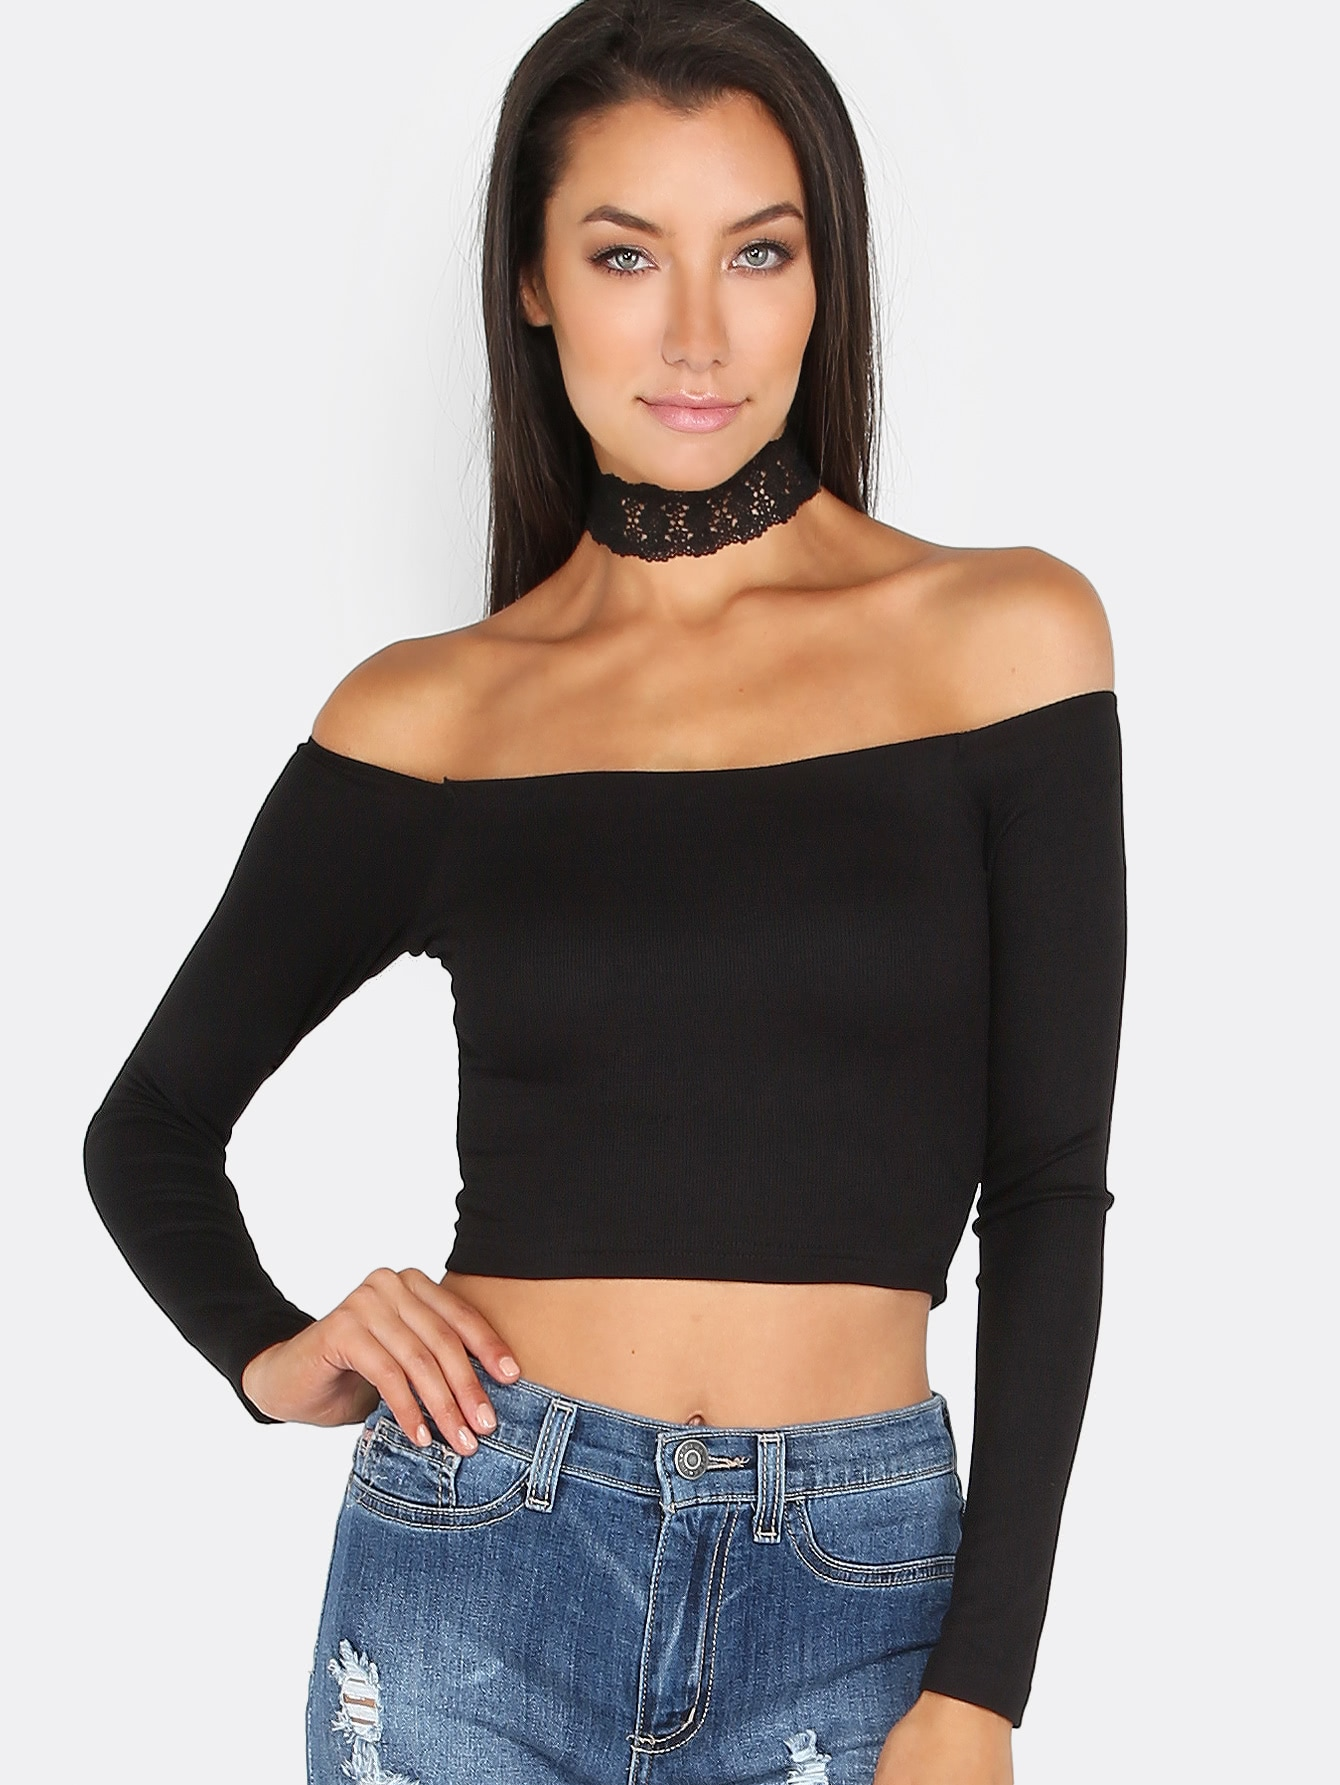 Off The Shoulder Crop Top BLACK mmctop-66128ltj-black